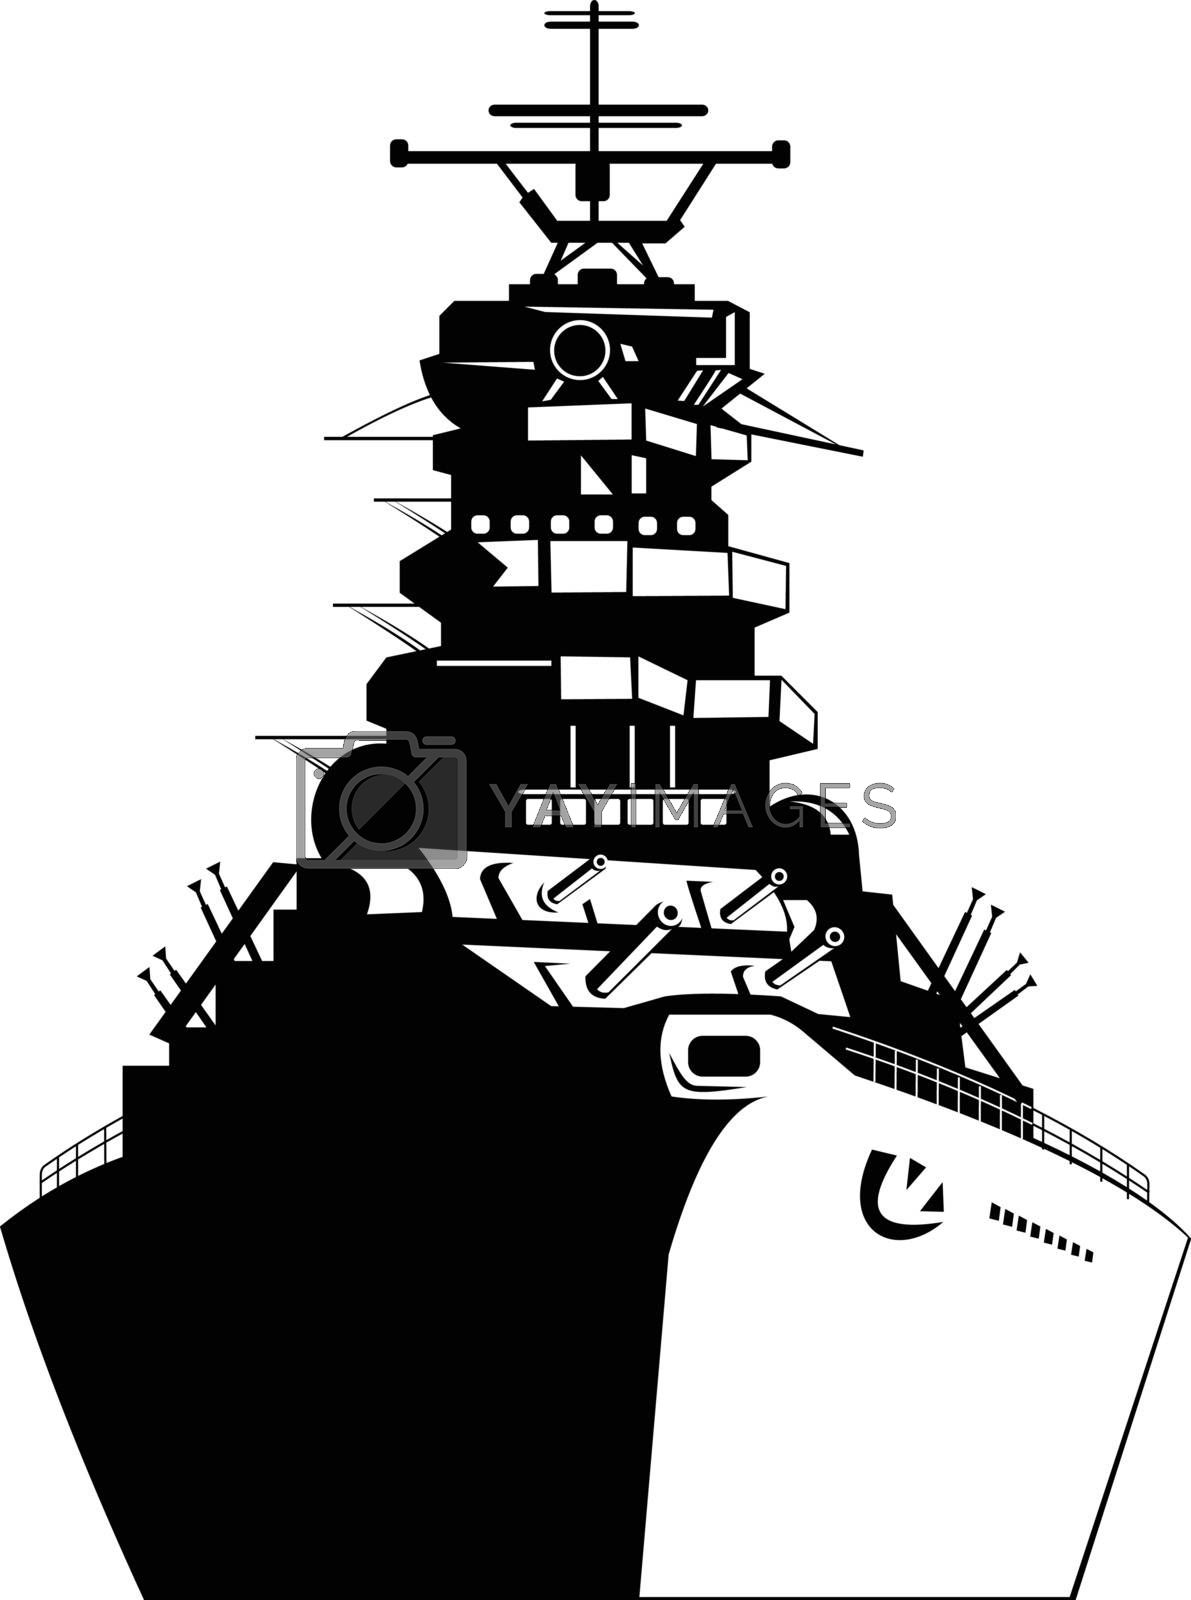 Retro style illustration of an American or United States battleship, warship, dreadnought, naval fighting ship viewed from the front on isolated background done in black and white.